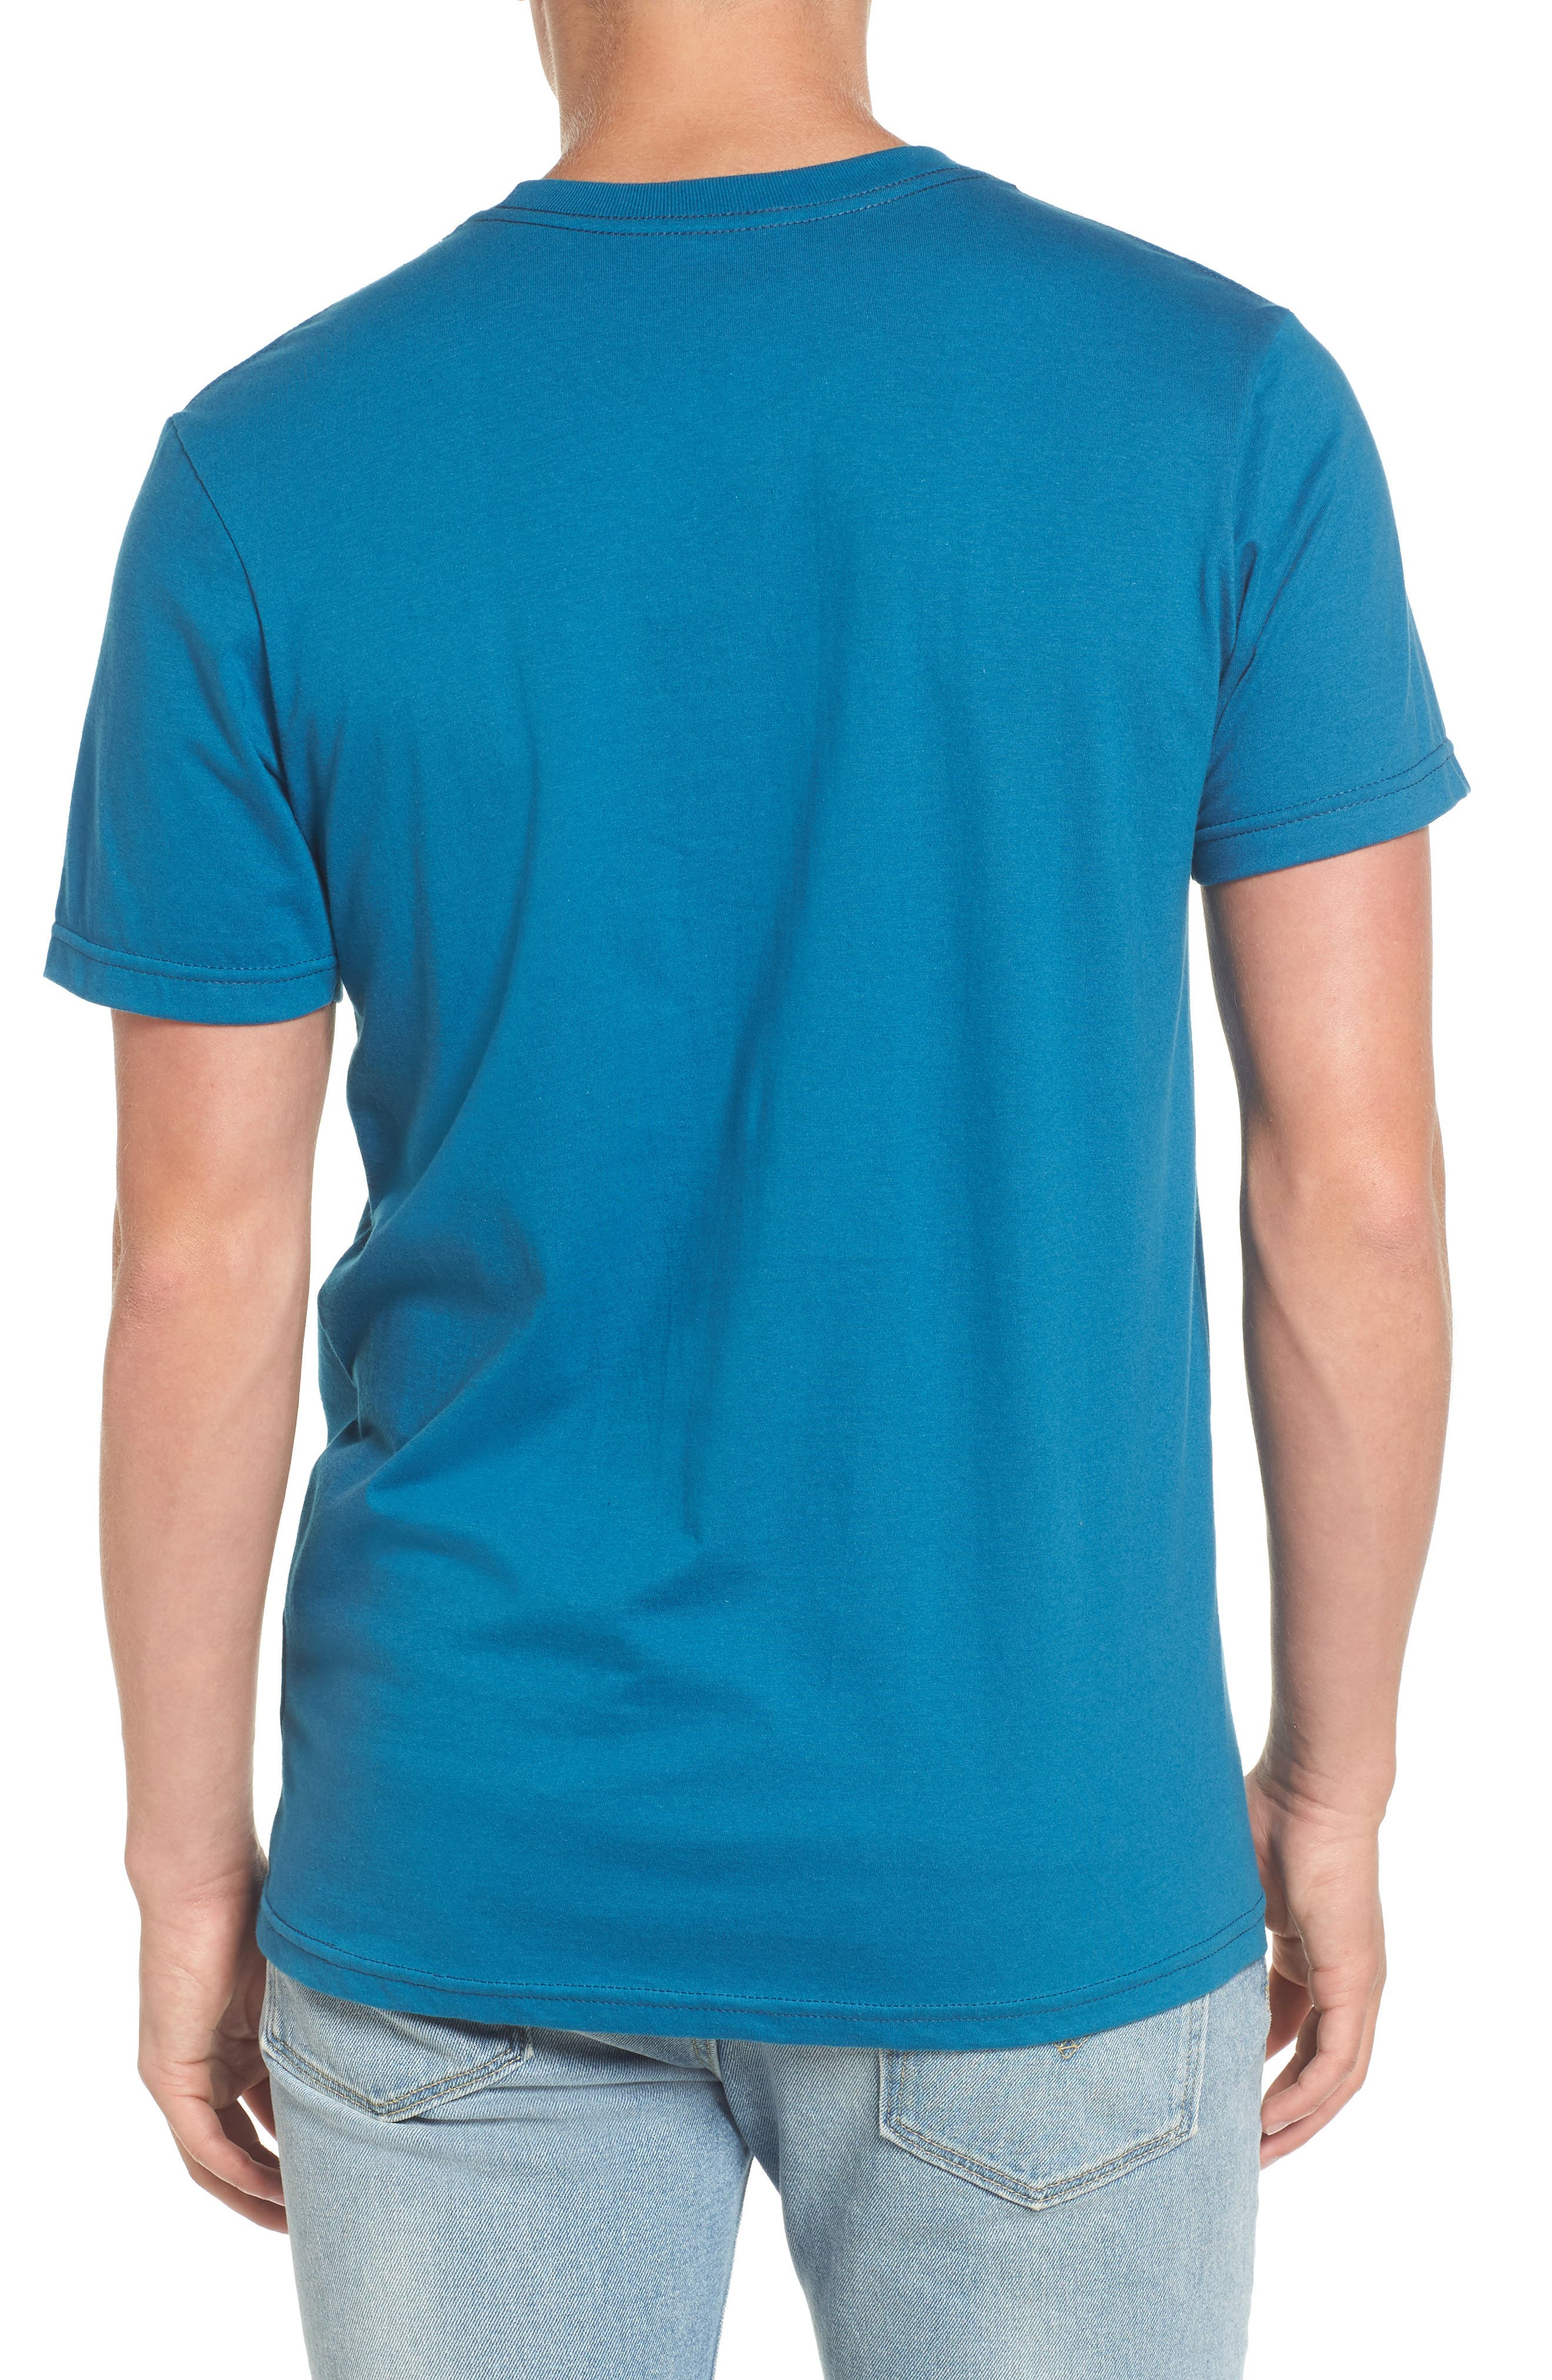 Nation 2 Graphic Pocket T-Shirt,                             Alternate thumbnail 2, color,                             Blue Tide